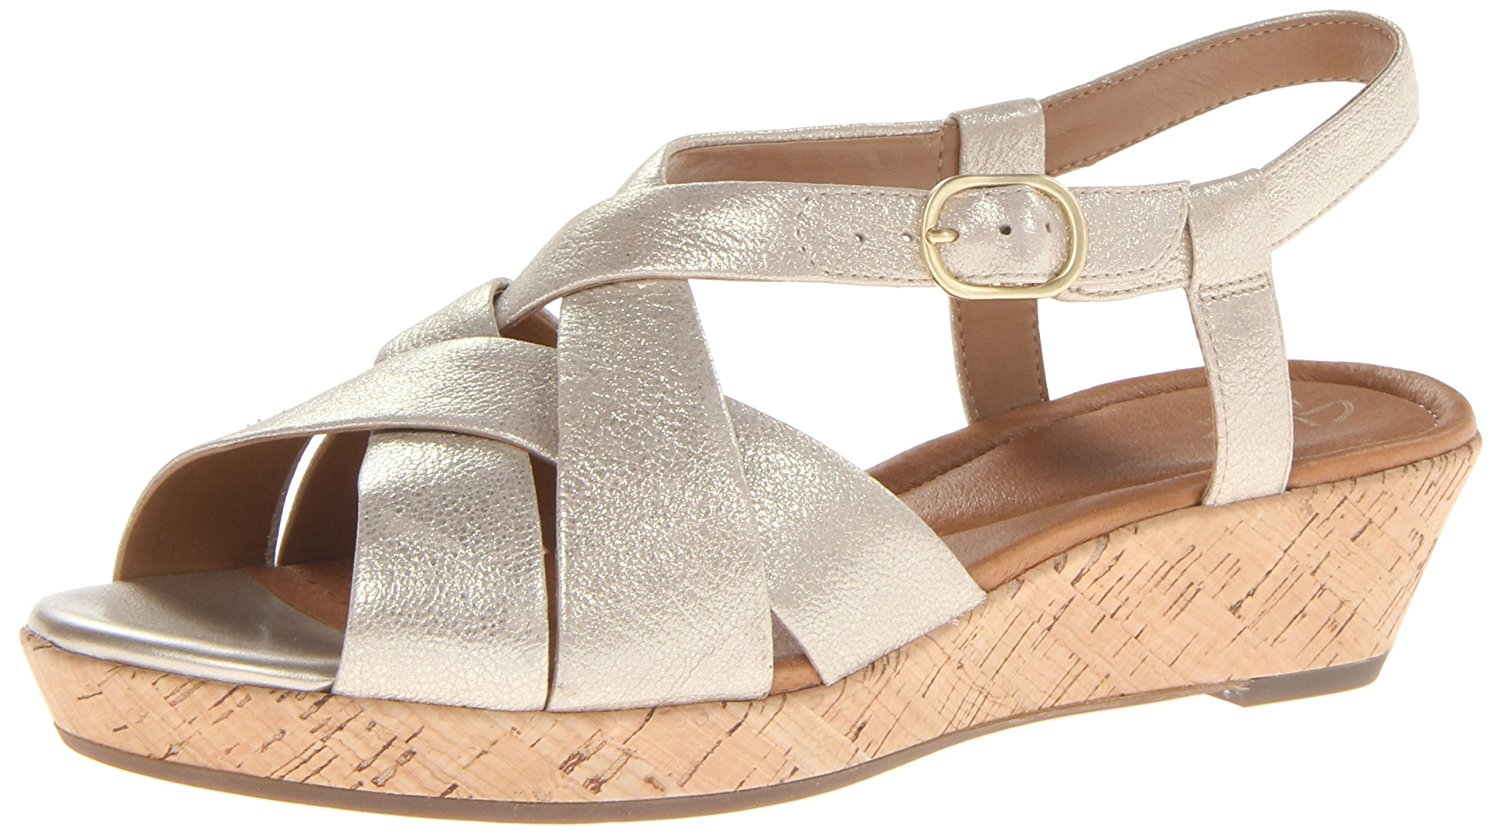 e7add34a83a Get Quotations · Clarks Women s Orlena Chutney Wedge Sandal